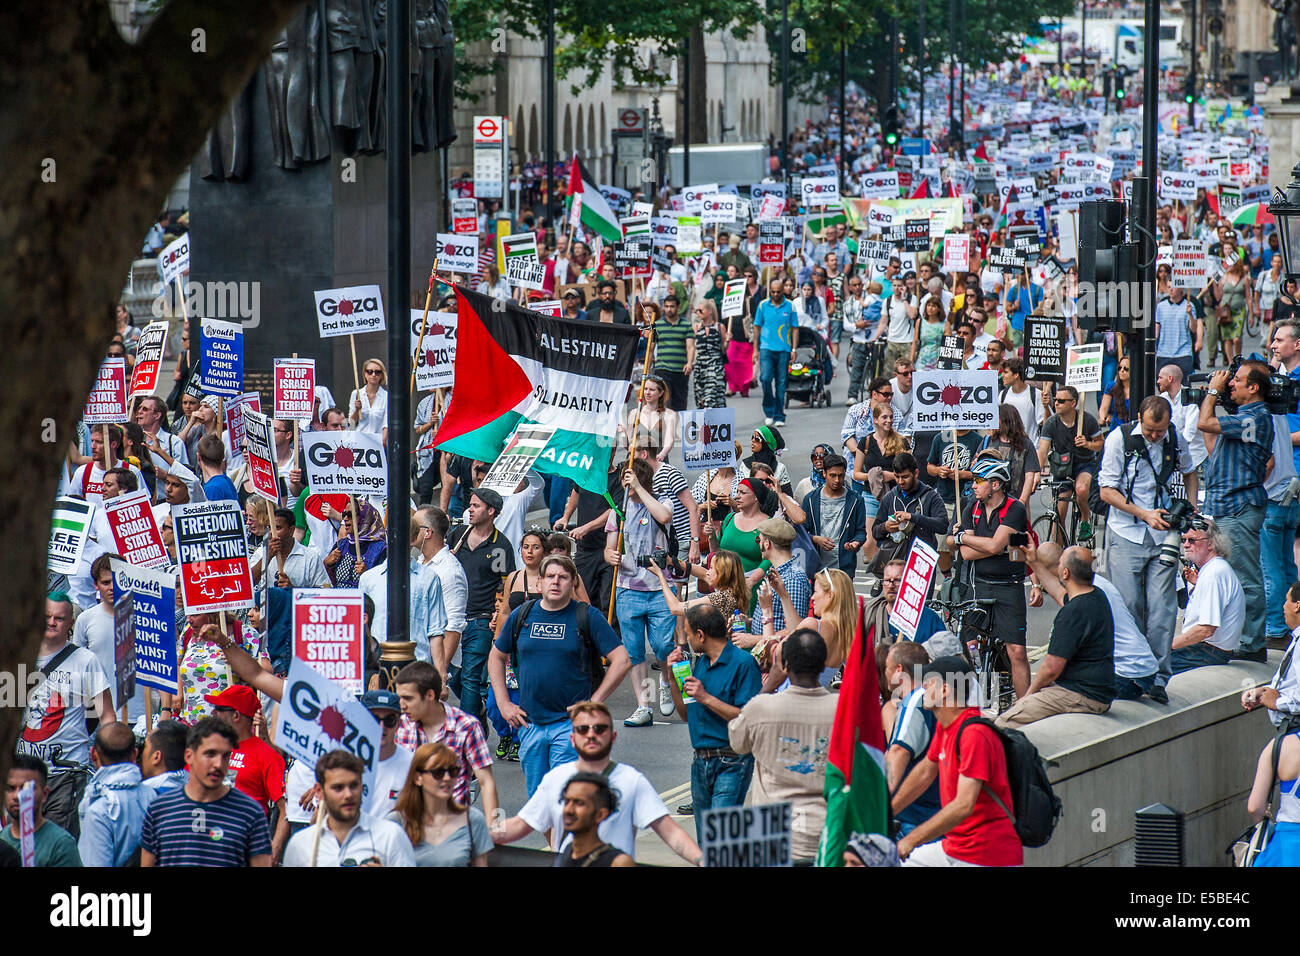 London, UK. 26th July, 2014. The March Passes Downing Street. Stop the 'massacre' in Gaza protest. A demonstration Stock Photo